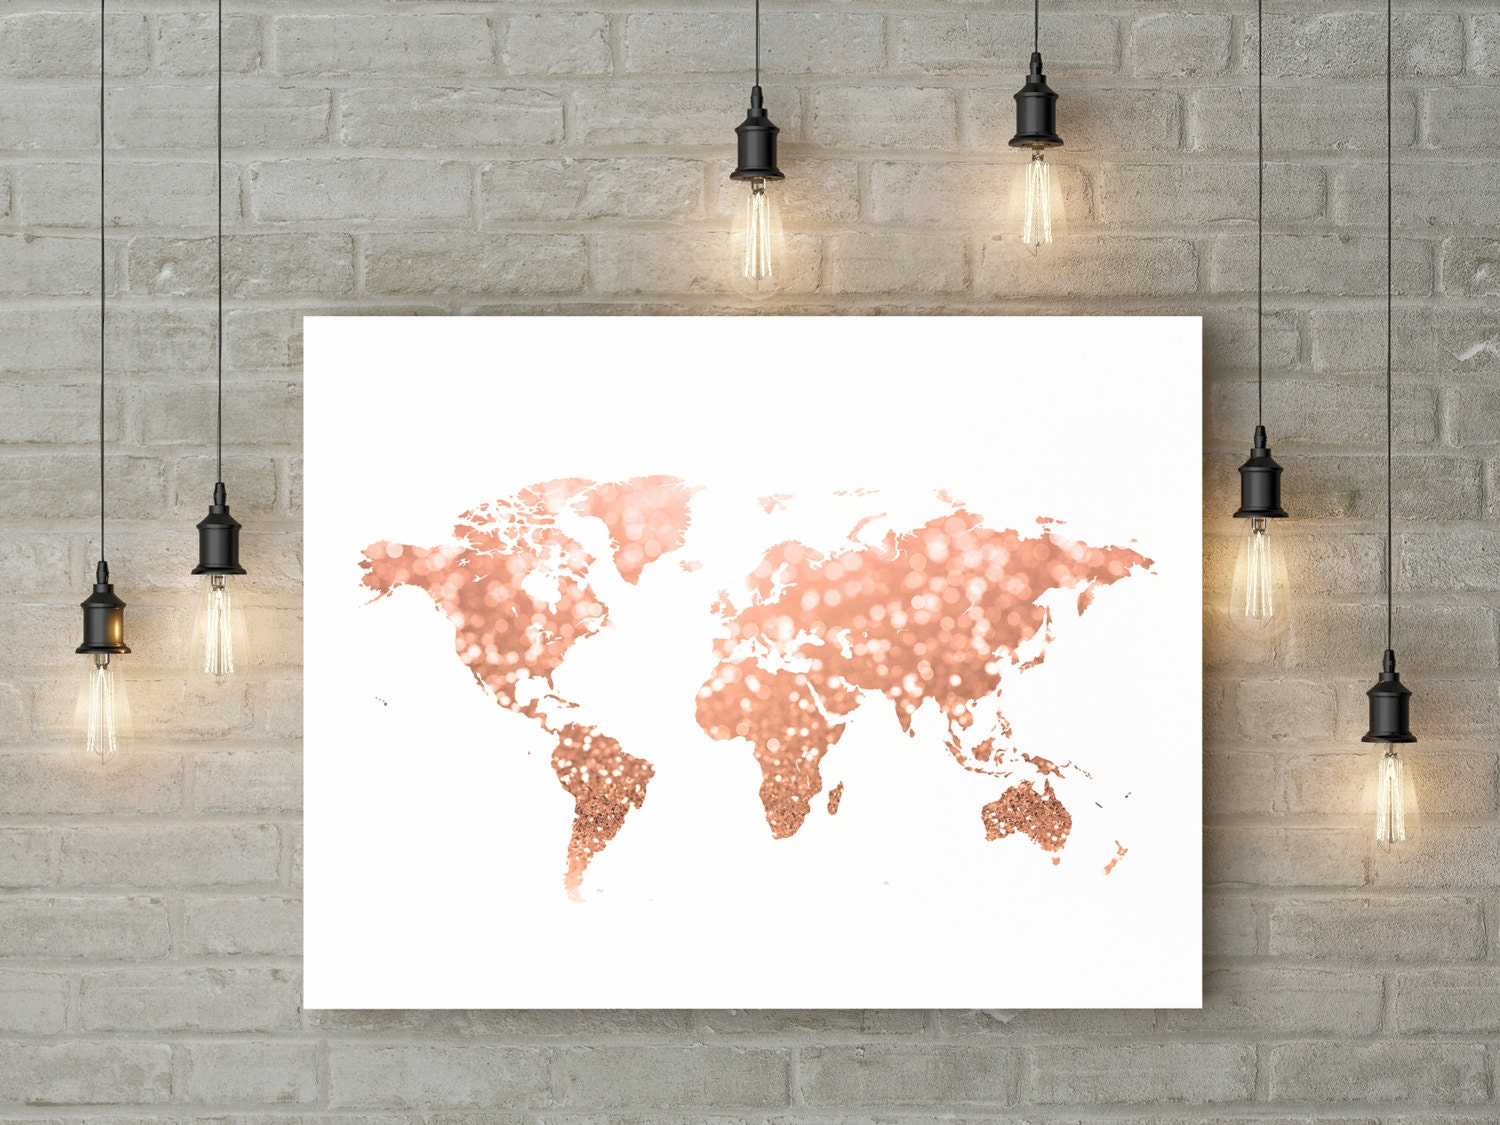 Rose gold world map print pink and gold map art travel decor - Rosegold dekoration ...